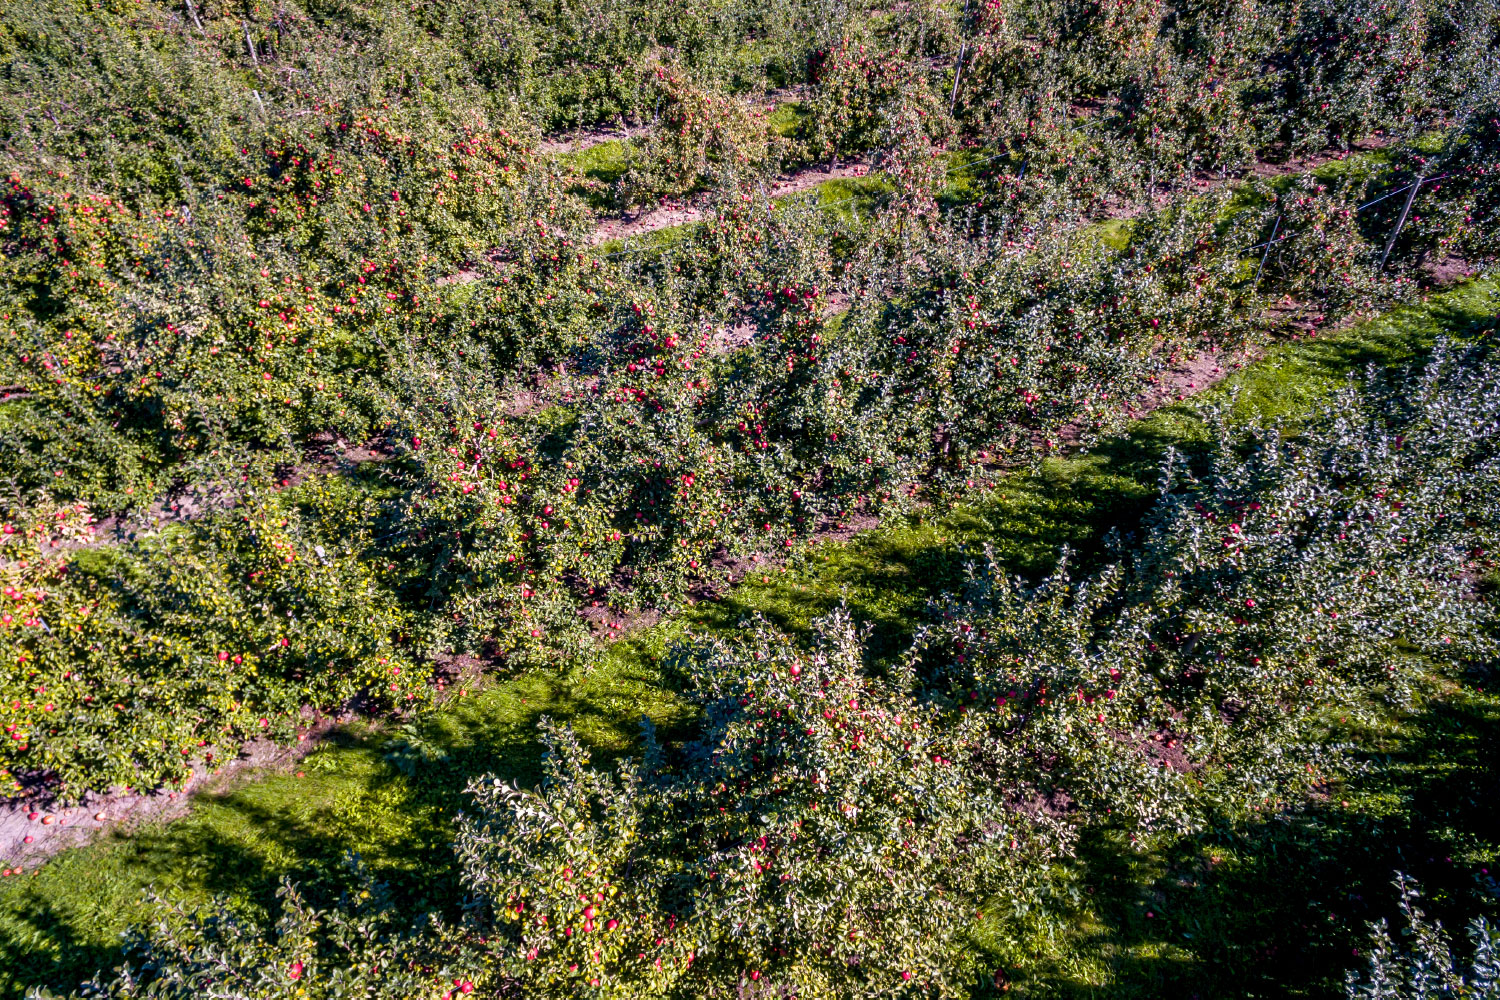 sky view of orchards